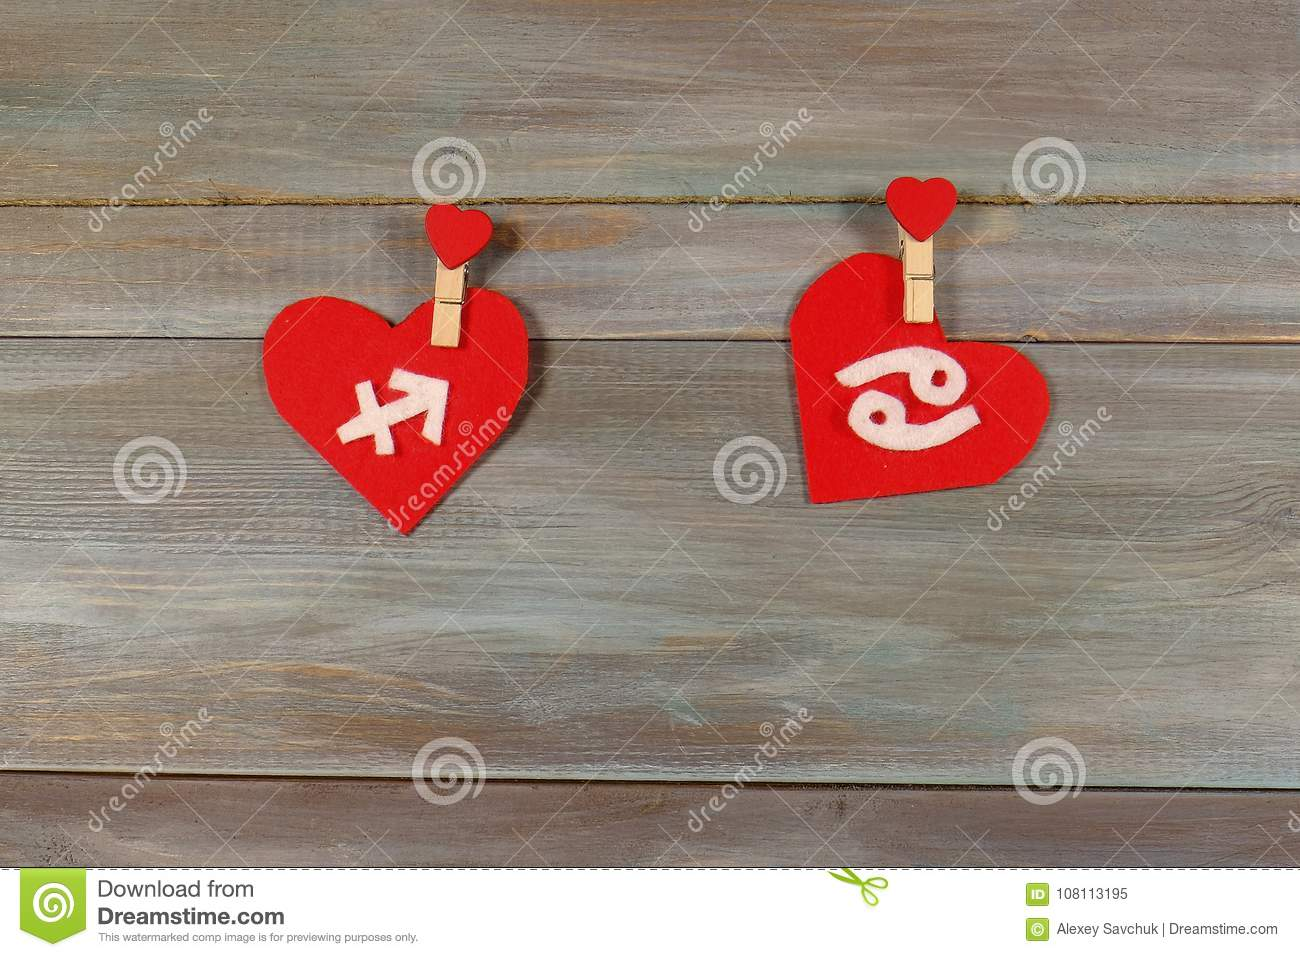 Sagittarius and cancer. signs of the zodiac and heart. wooden ba